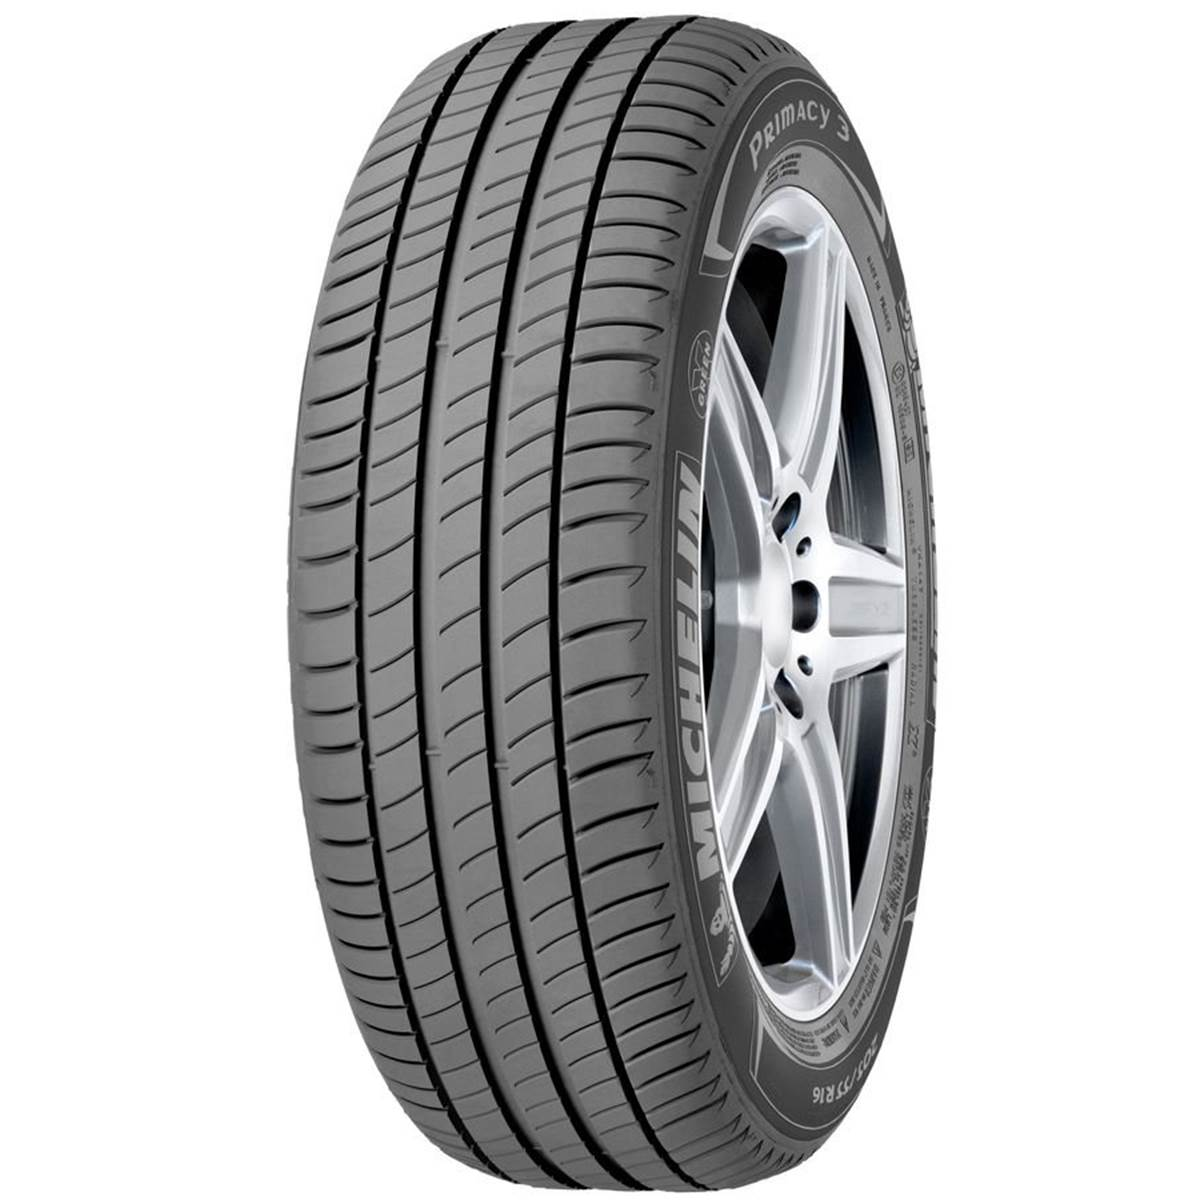 Pneu MICHELIN 225/50R16 92W Primacy 3